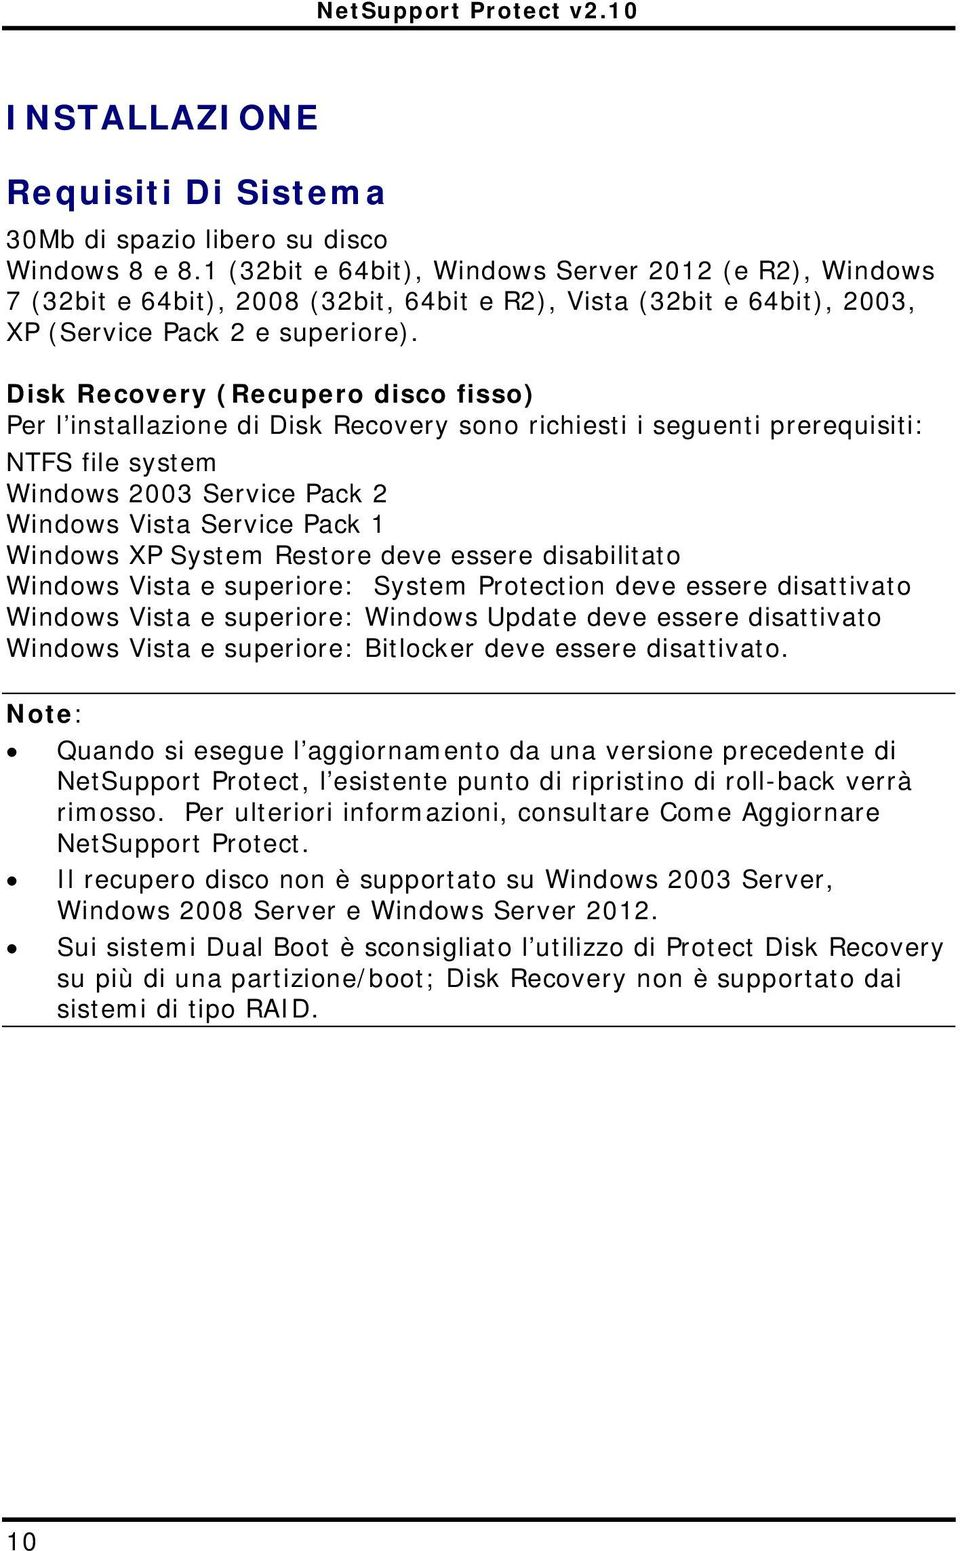 Disk Recovery (Recupero disco fisso) Per l installazione di Disk Recovery sono richiesti i seguenti prerequisiti: NTFS file system Windows 2003 Service Pack 2 Windows Vista Service Pack 1 Windows XP